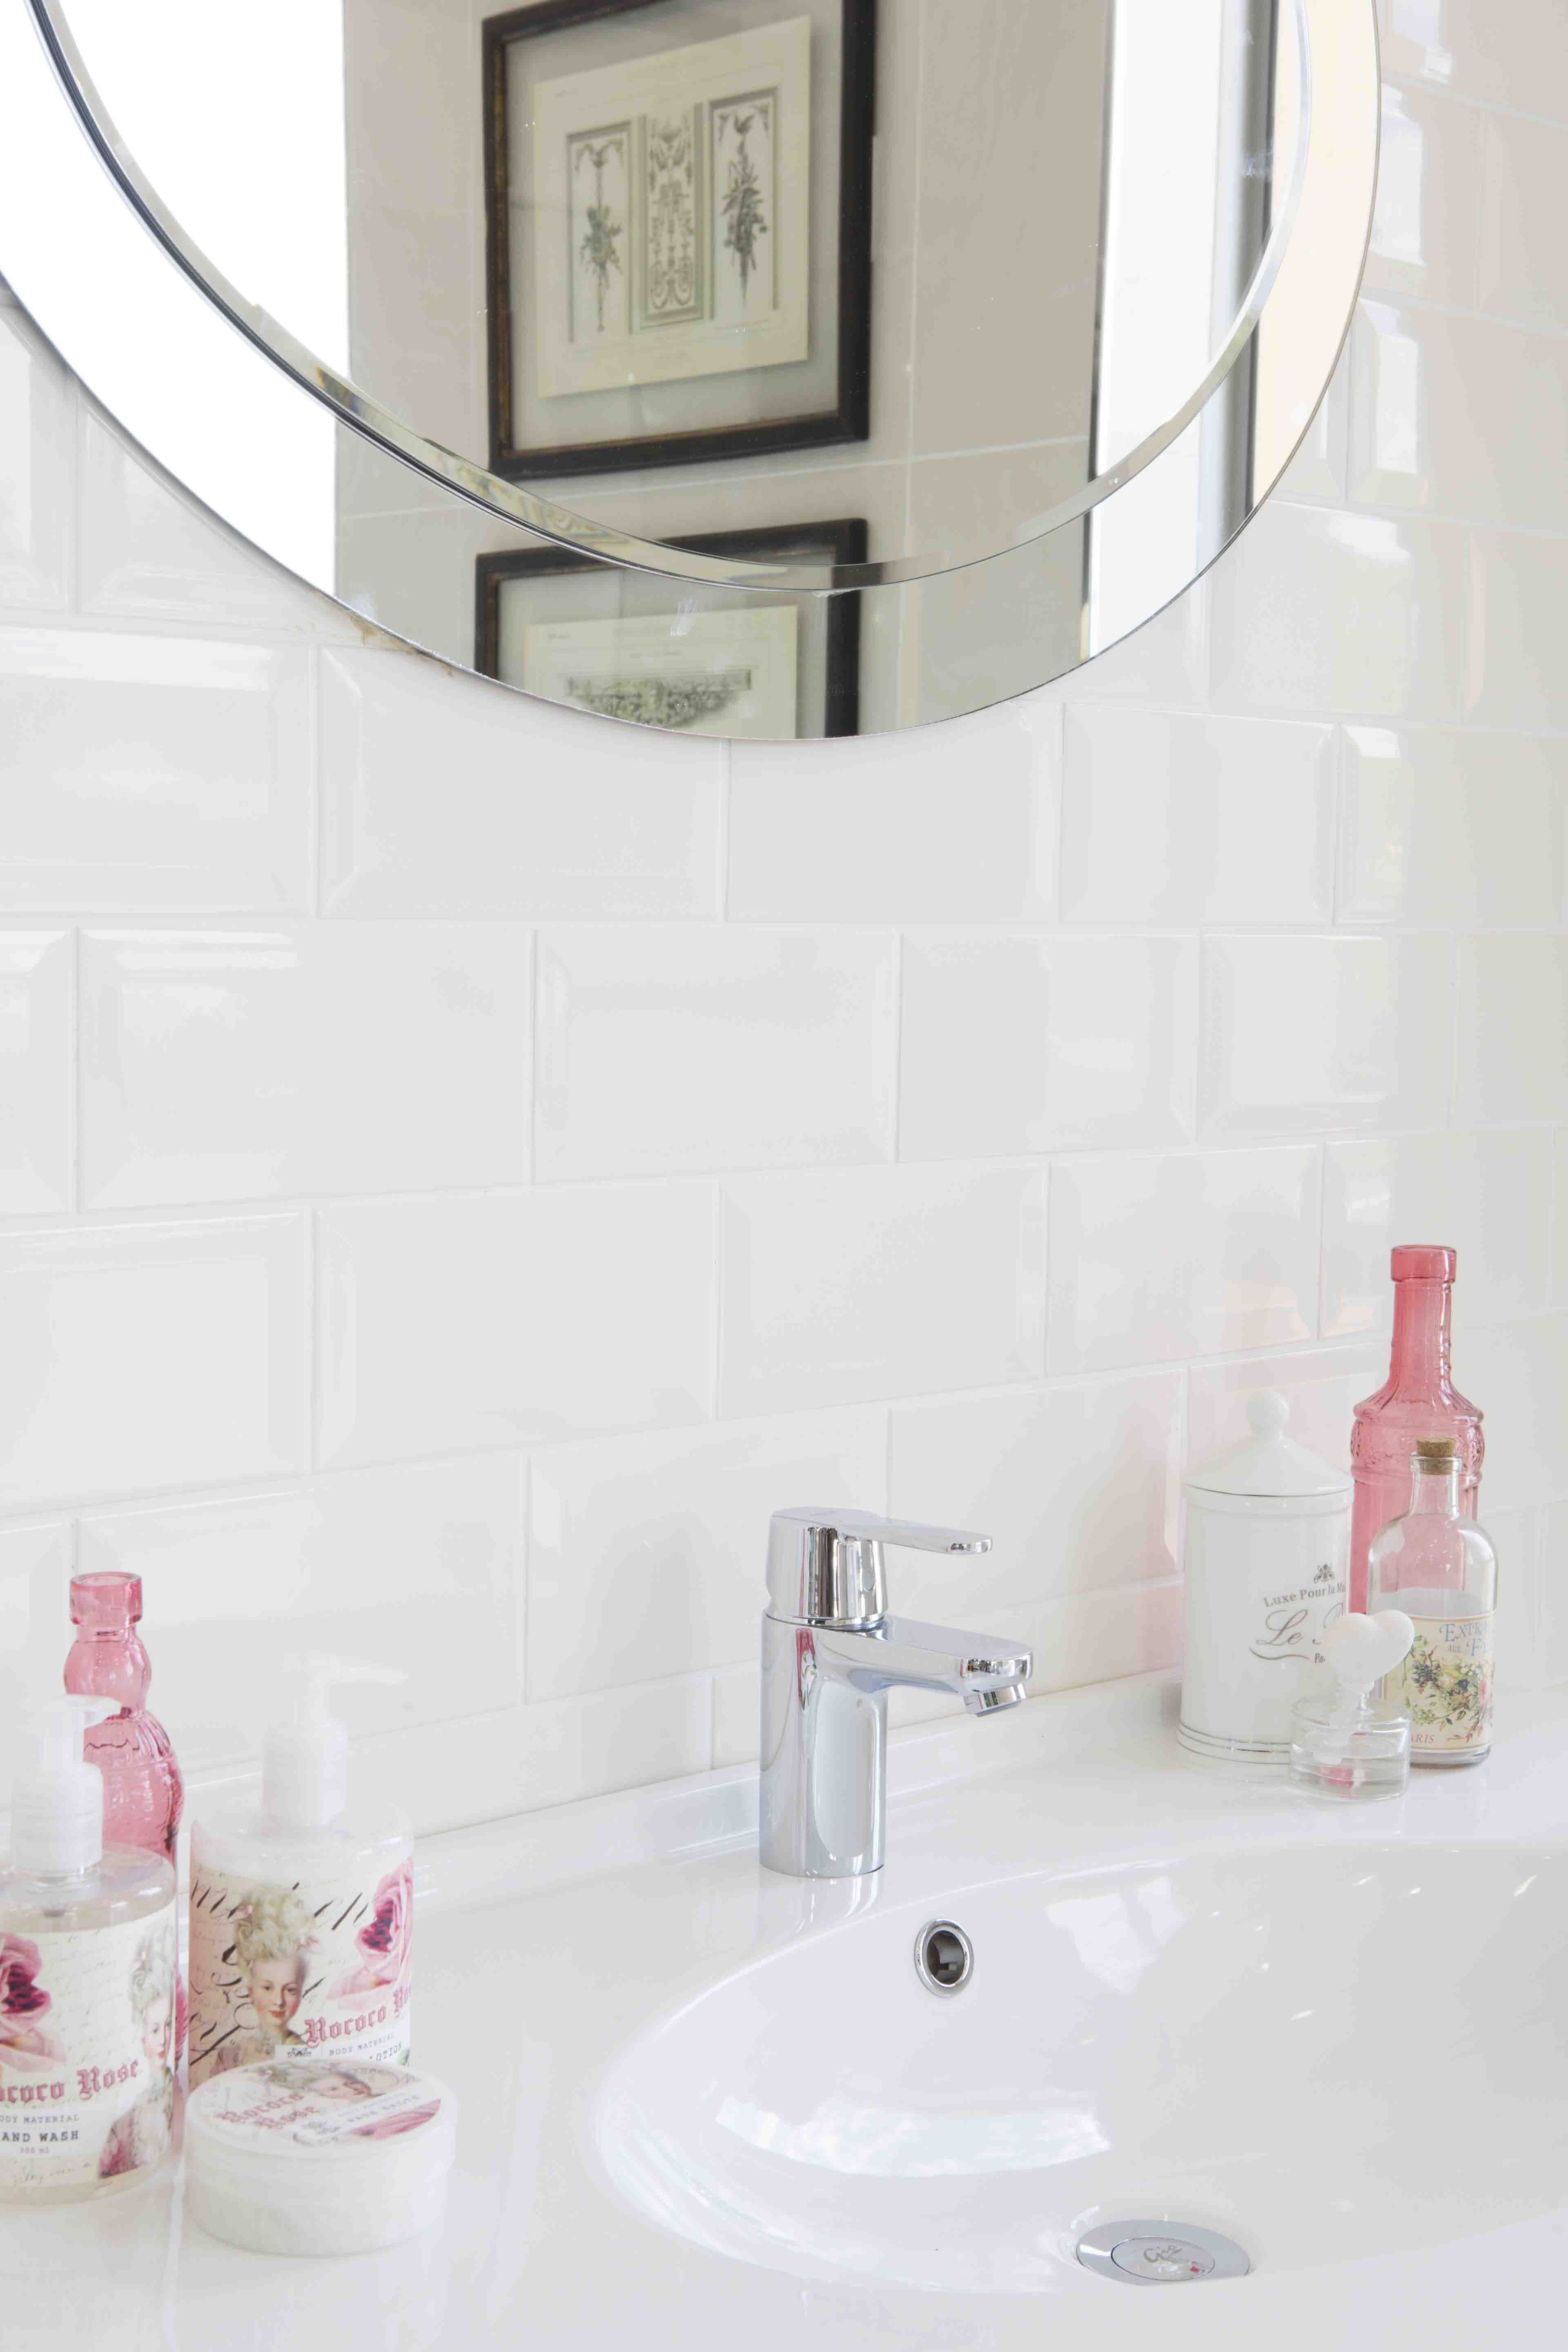 Bathroom Accessories In Soft Kisses Of Pink Complement A Inspired By Romance